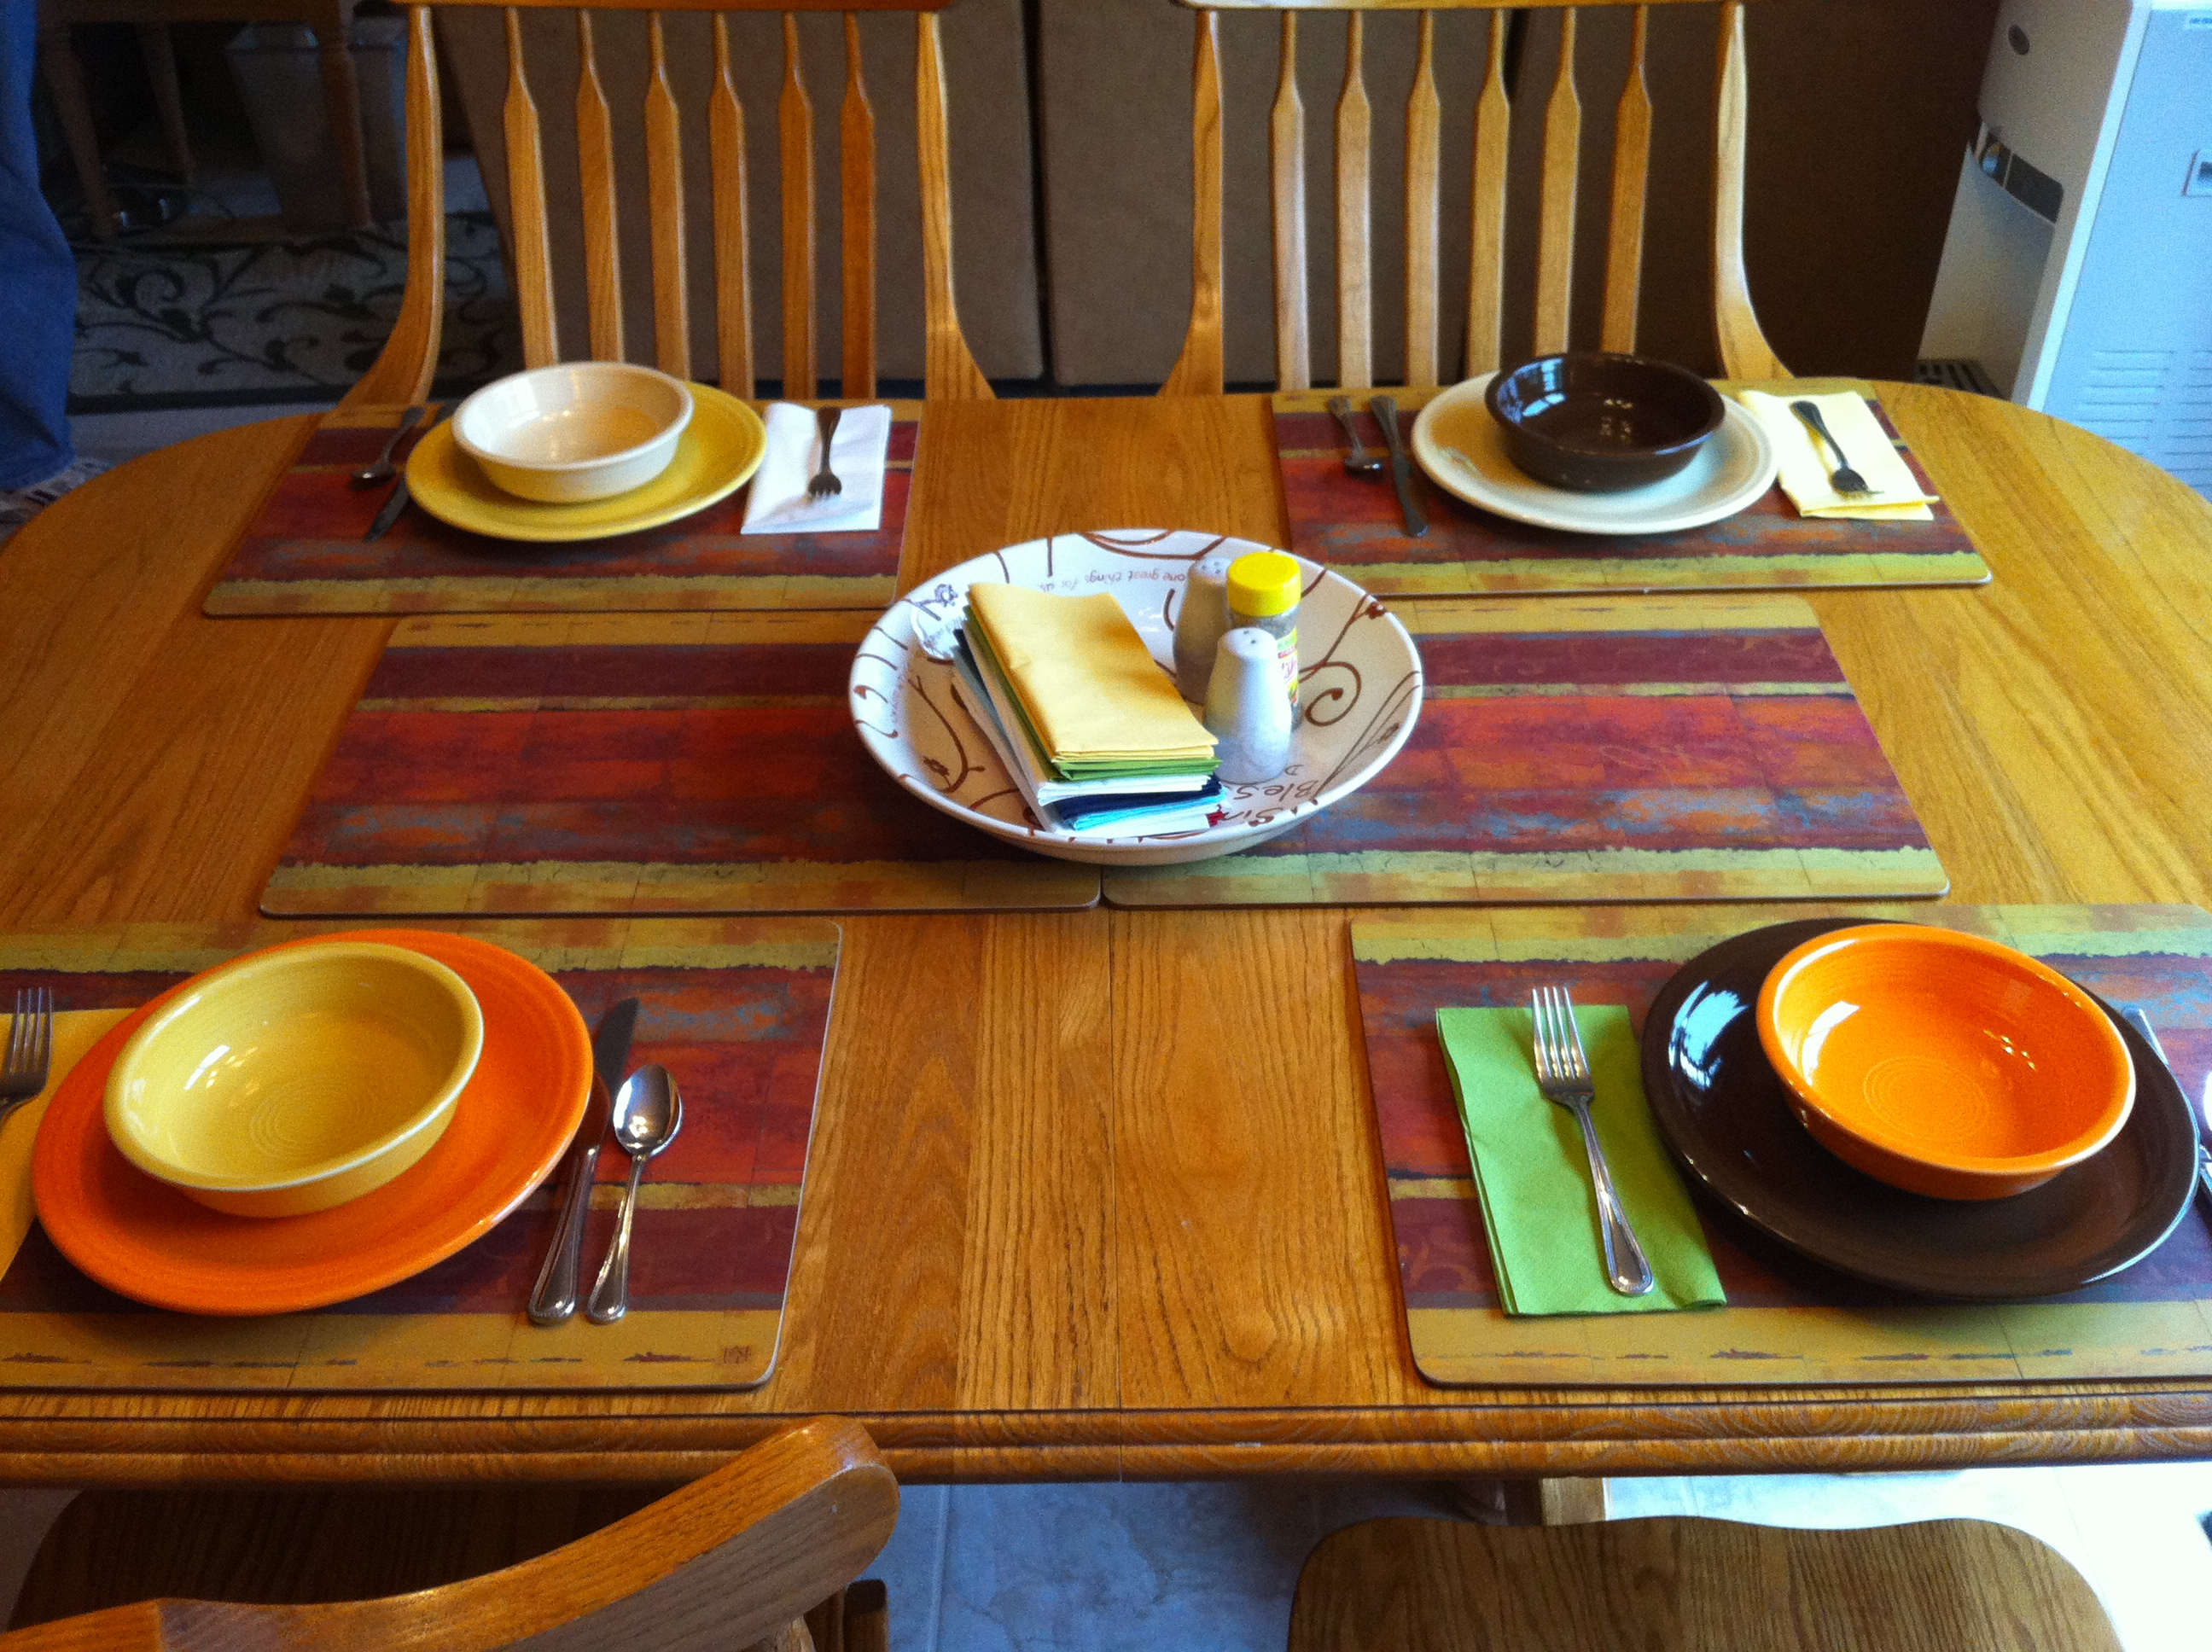 Placemats from Pier 1 Imports; Dinnerware from Fiesta & Deal Alert: Pier 1 Imports $10 off $10 Purchase - Kelly\u0027s Lucky You